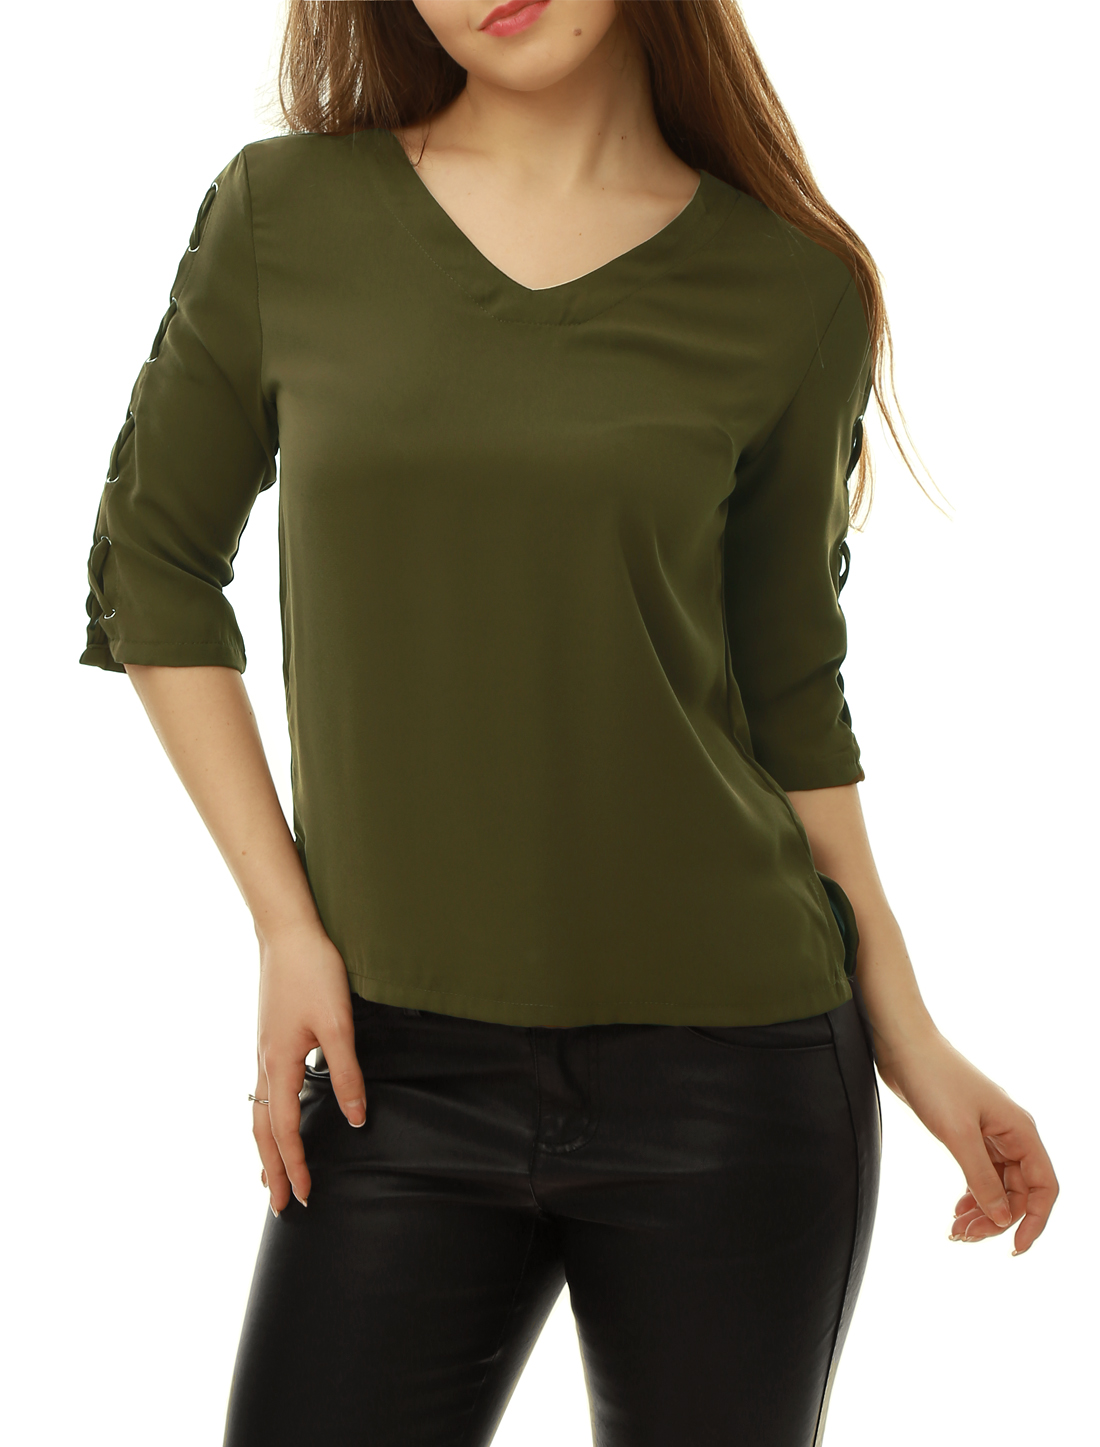 Women Three Quarter Lace Up Sleeves V Neck Side-Slit Top Green XS